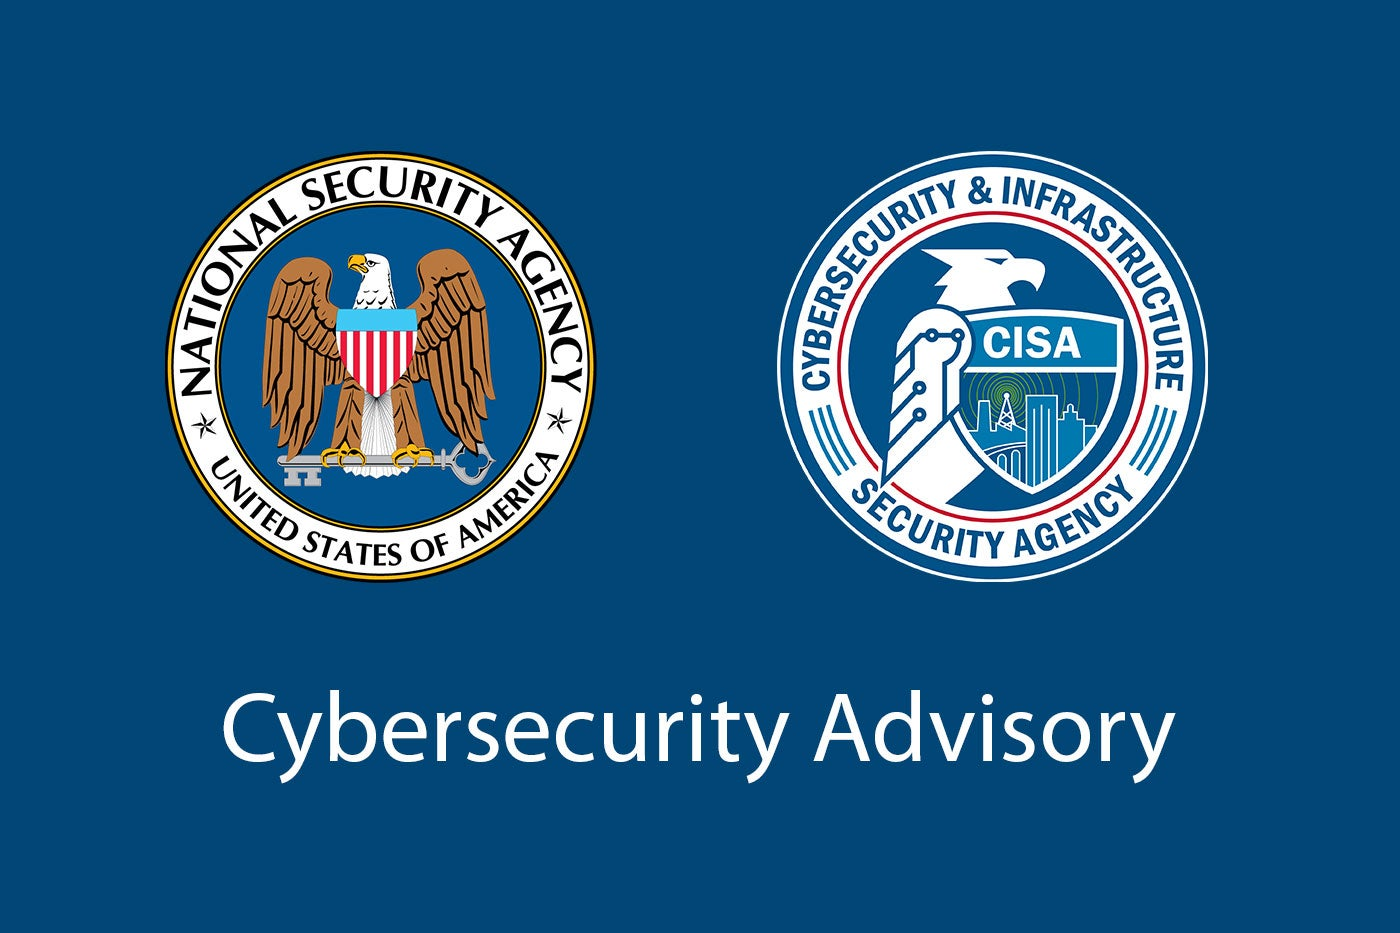 NSA & CISA Call For Action to Lower OT/IoT Cybersecurity Exposure